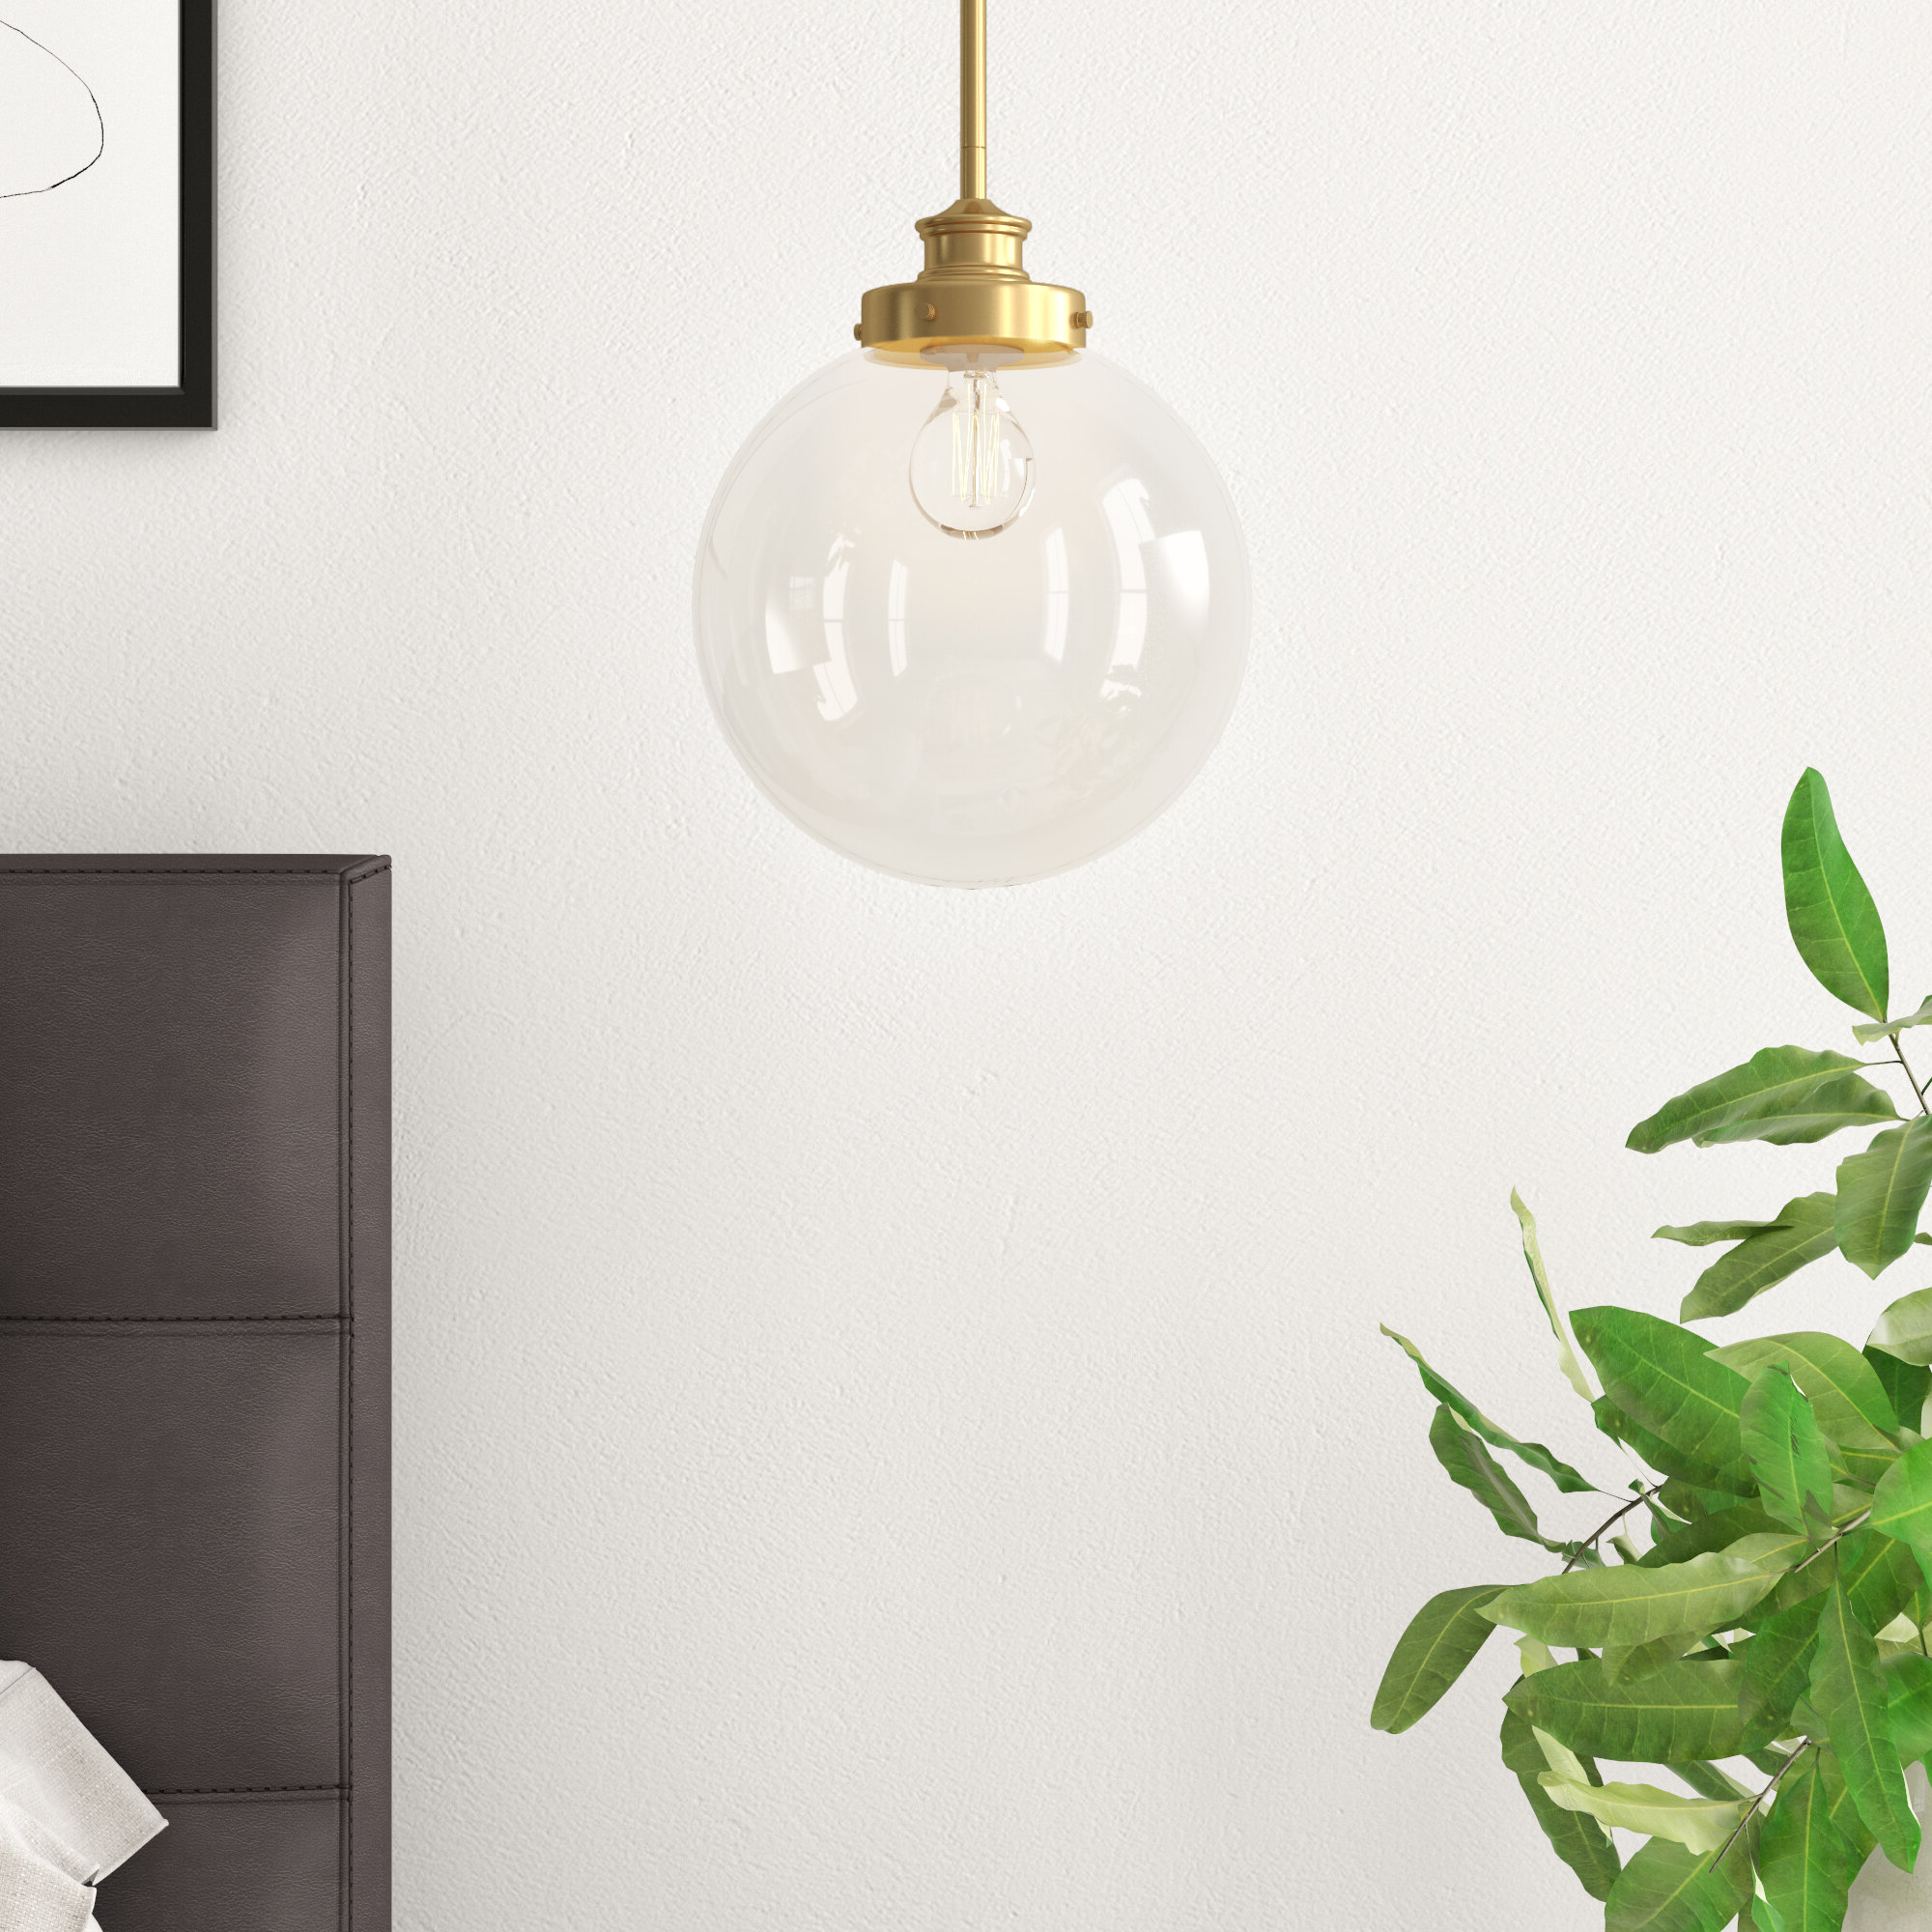 Best And Newest Bautista 1 Light Single Globe Pendants Intended For Cayden 1 Light Single Globe Pendant (View 6 of 25)